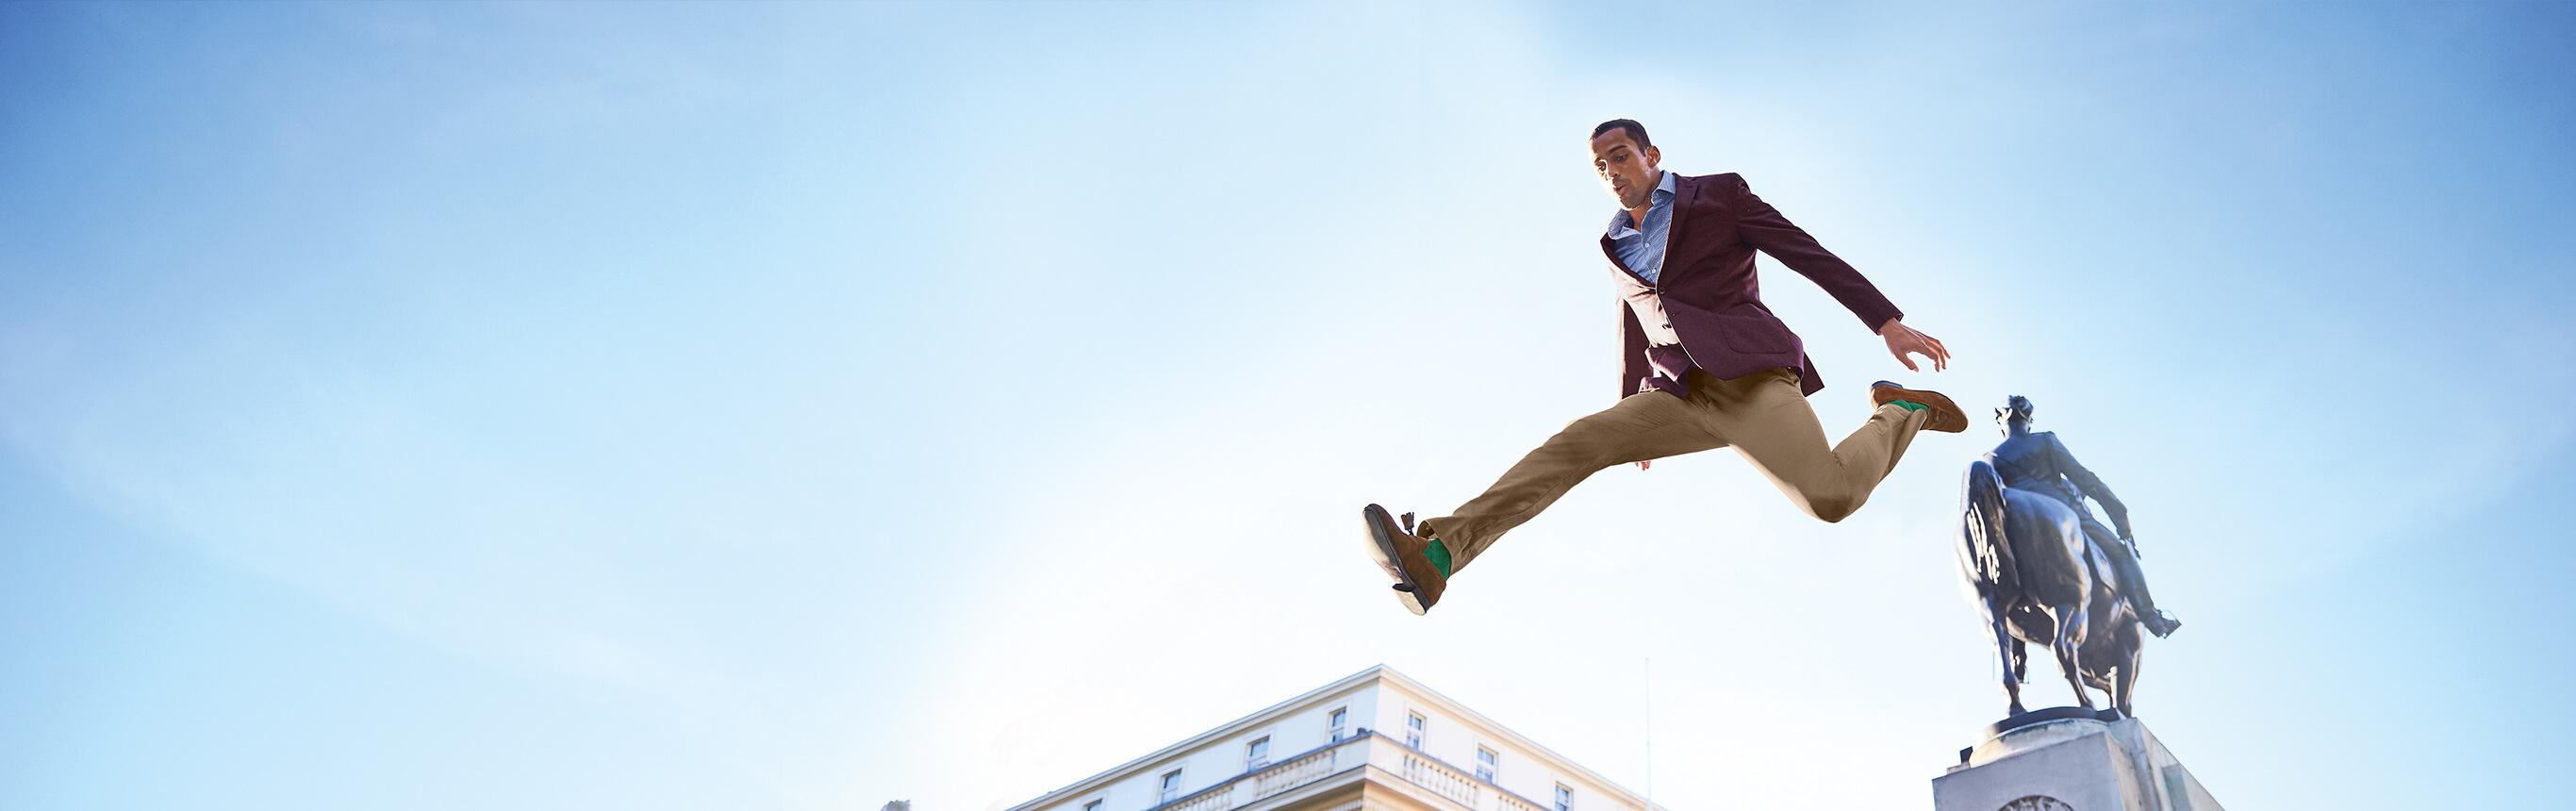 Image of model jumping